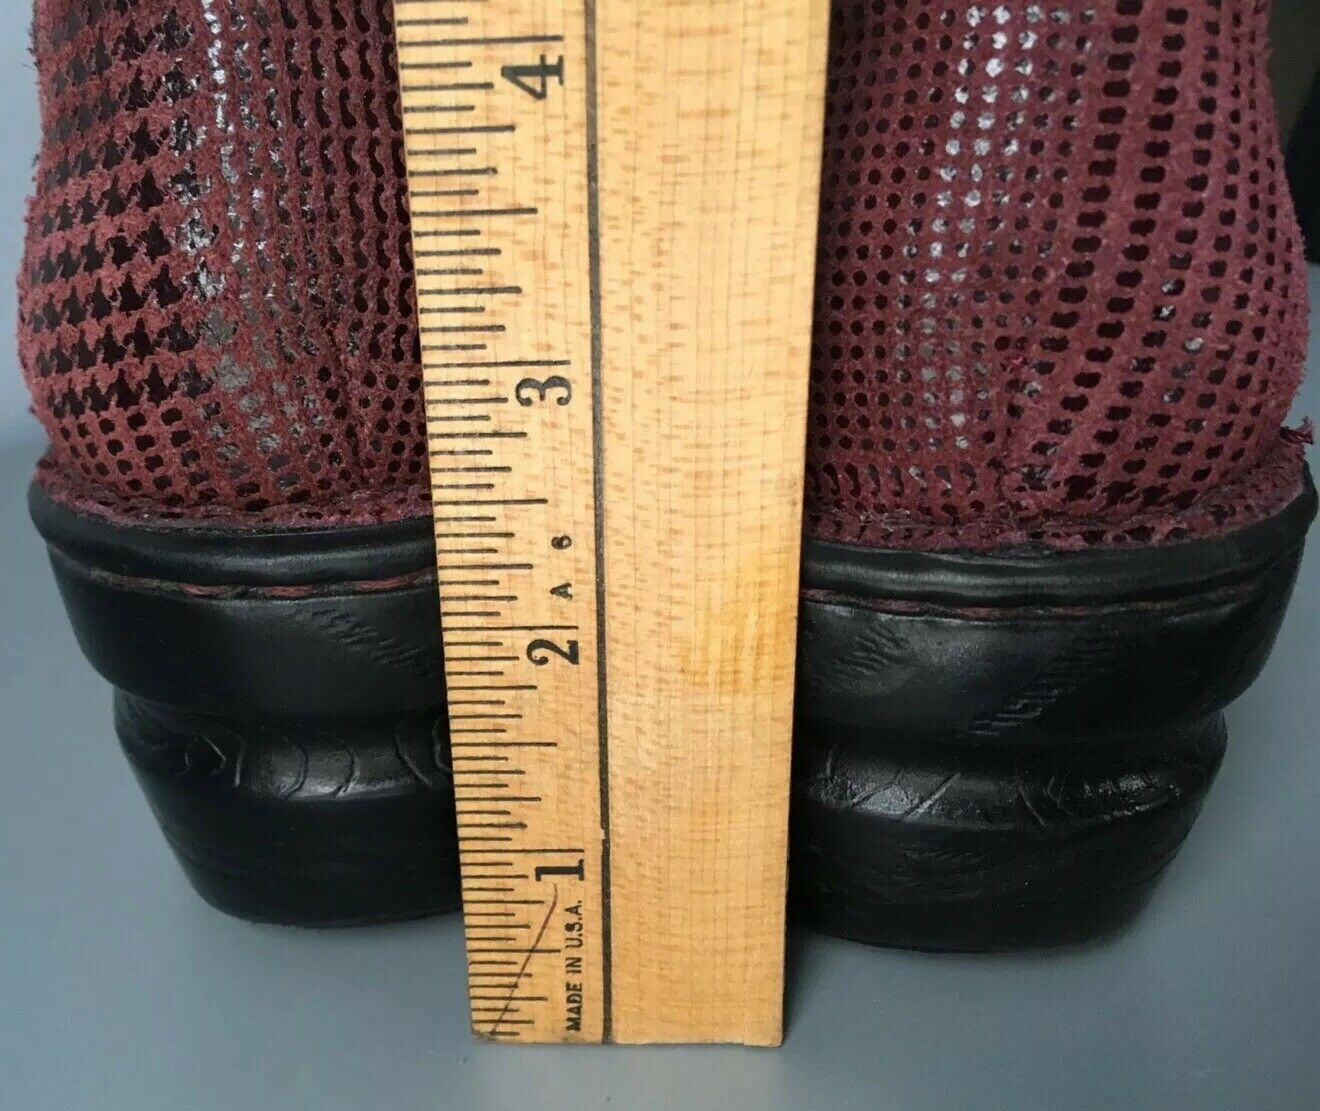 BOC 9 40.5 Peggy Peggy Peggy Clog Red Black Leather Burgundy Deep Born Plaid Pattern NWOT 4e537f